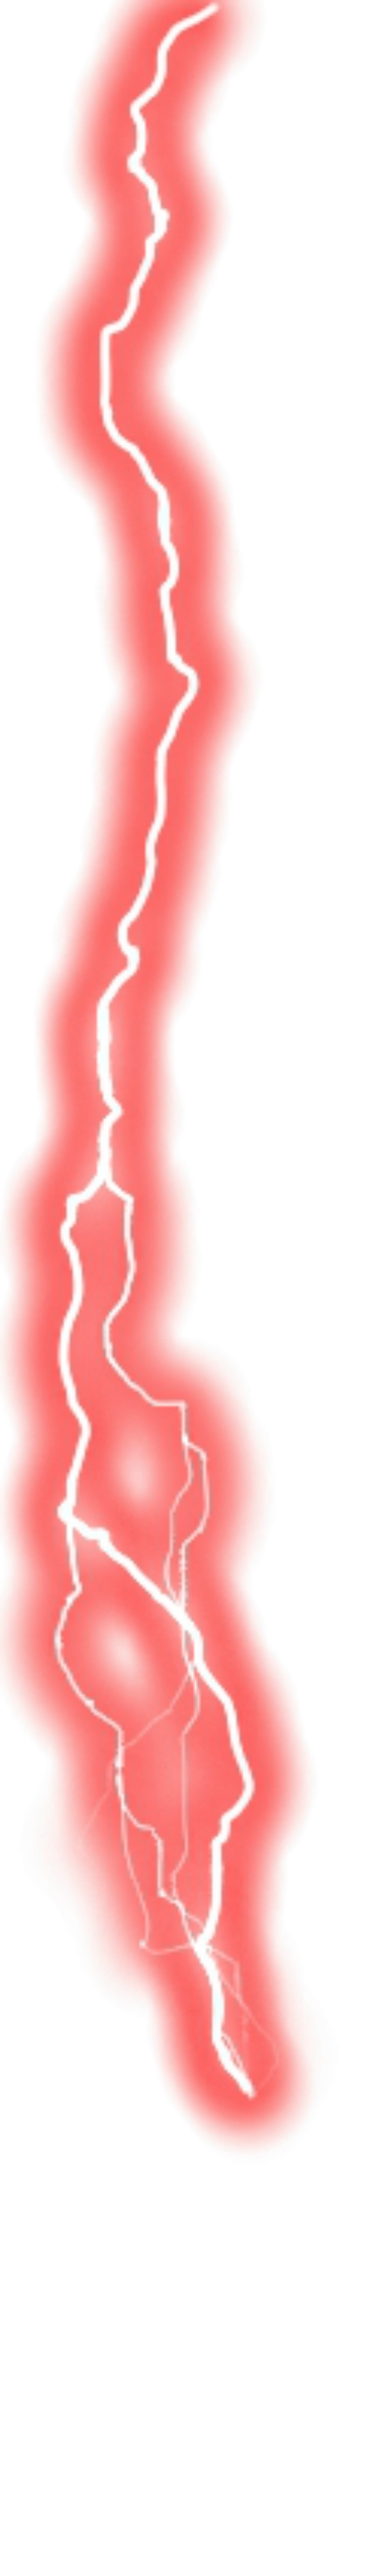 Red Lightning Png Free Red Lightning Png Transparent Images 3287 Pngio